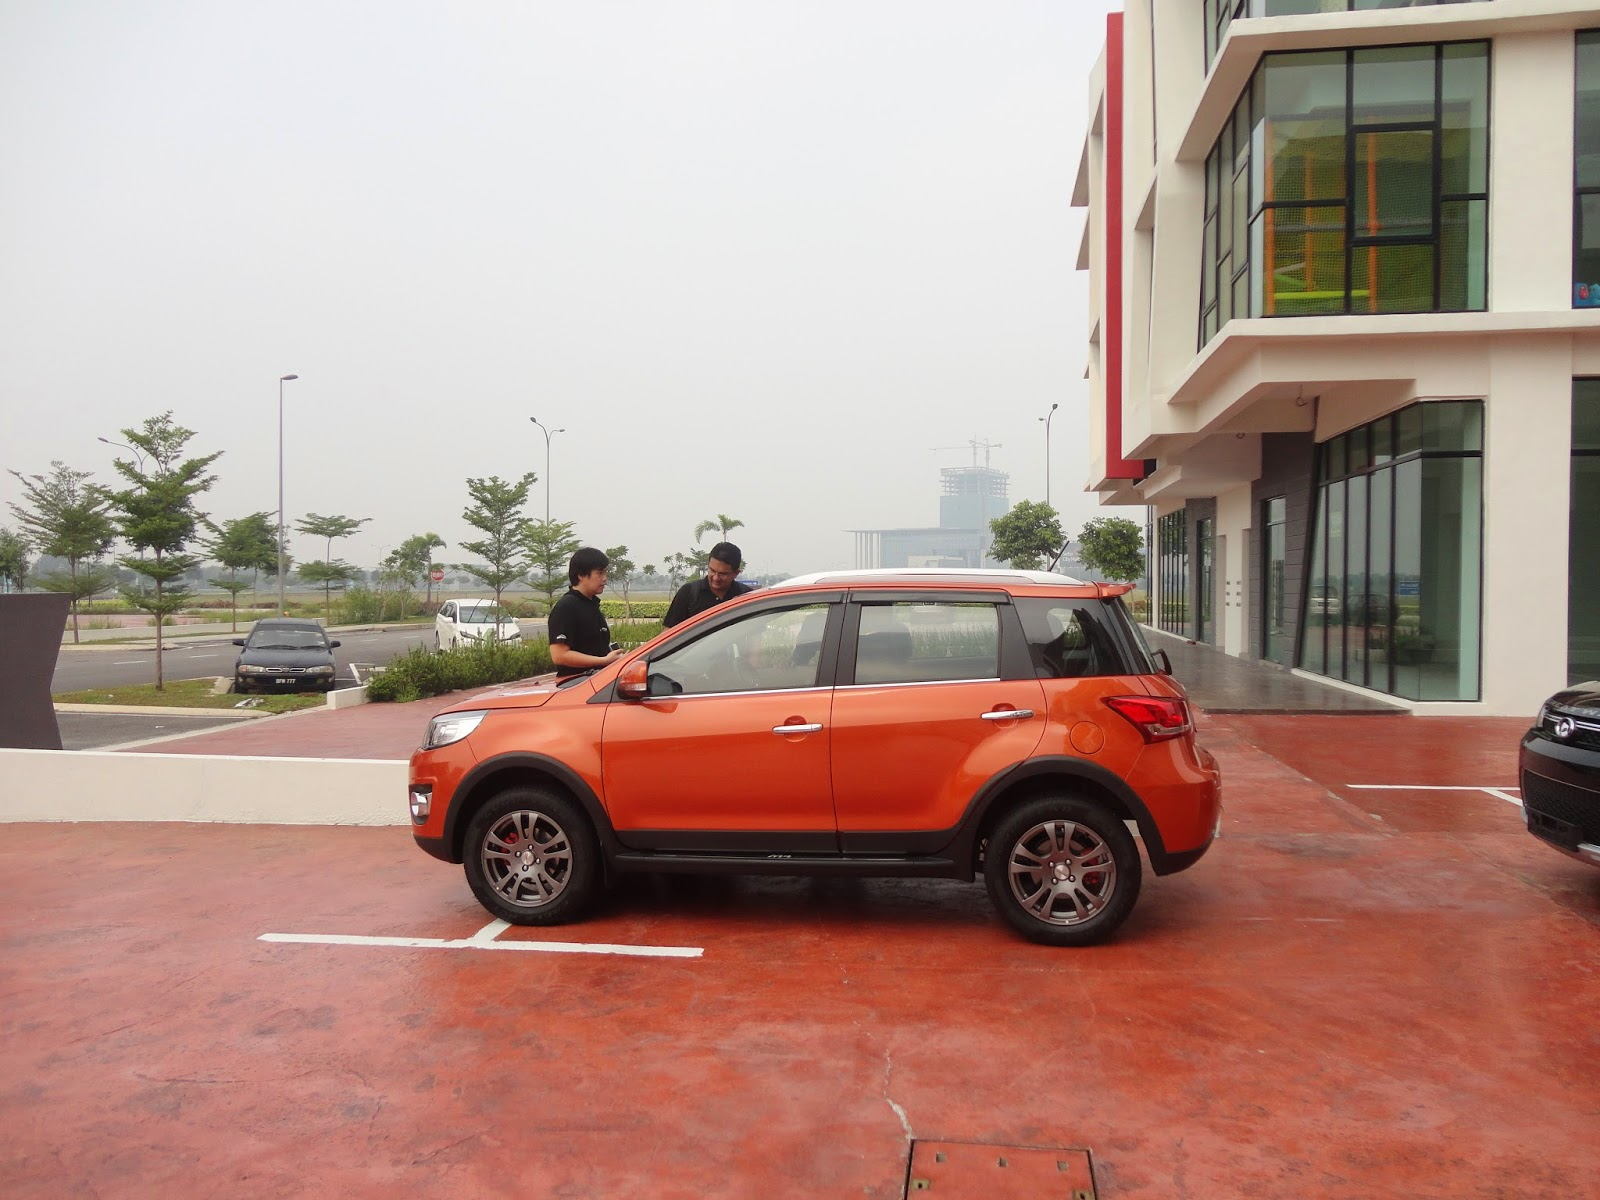 The great wall m4 has about 185mm of ground clearance where most small compacts have about